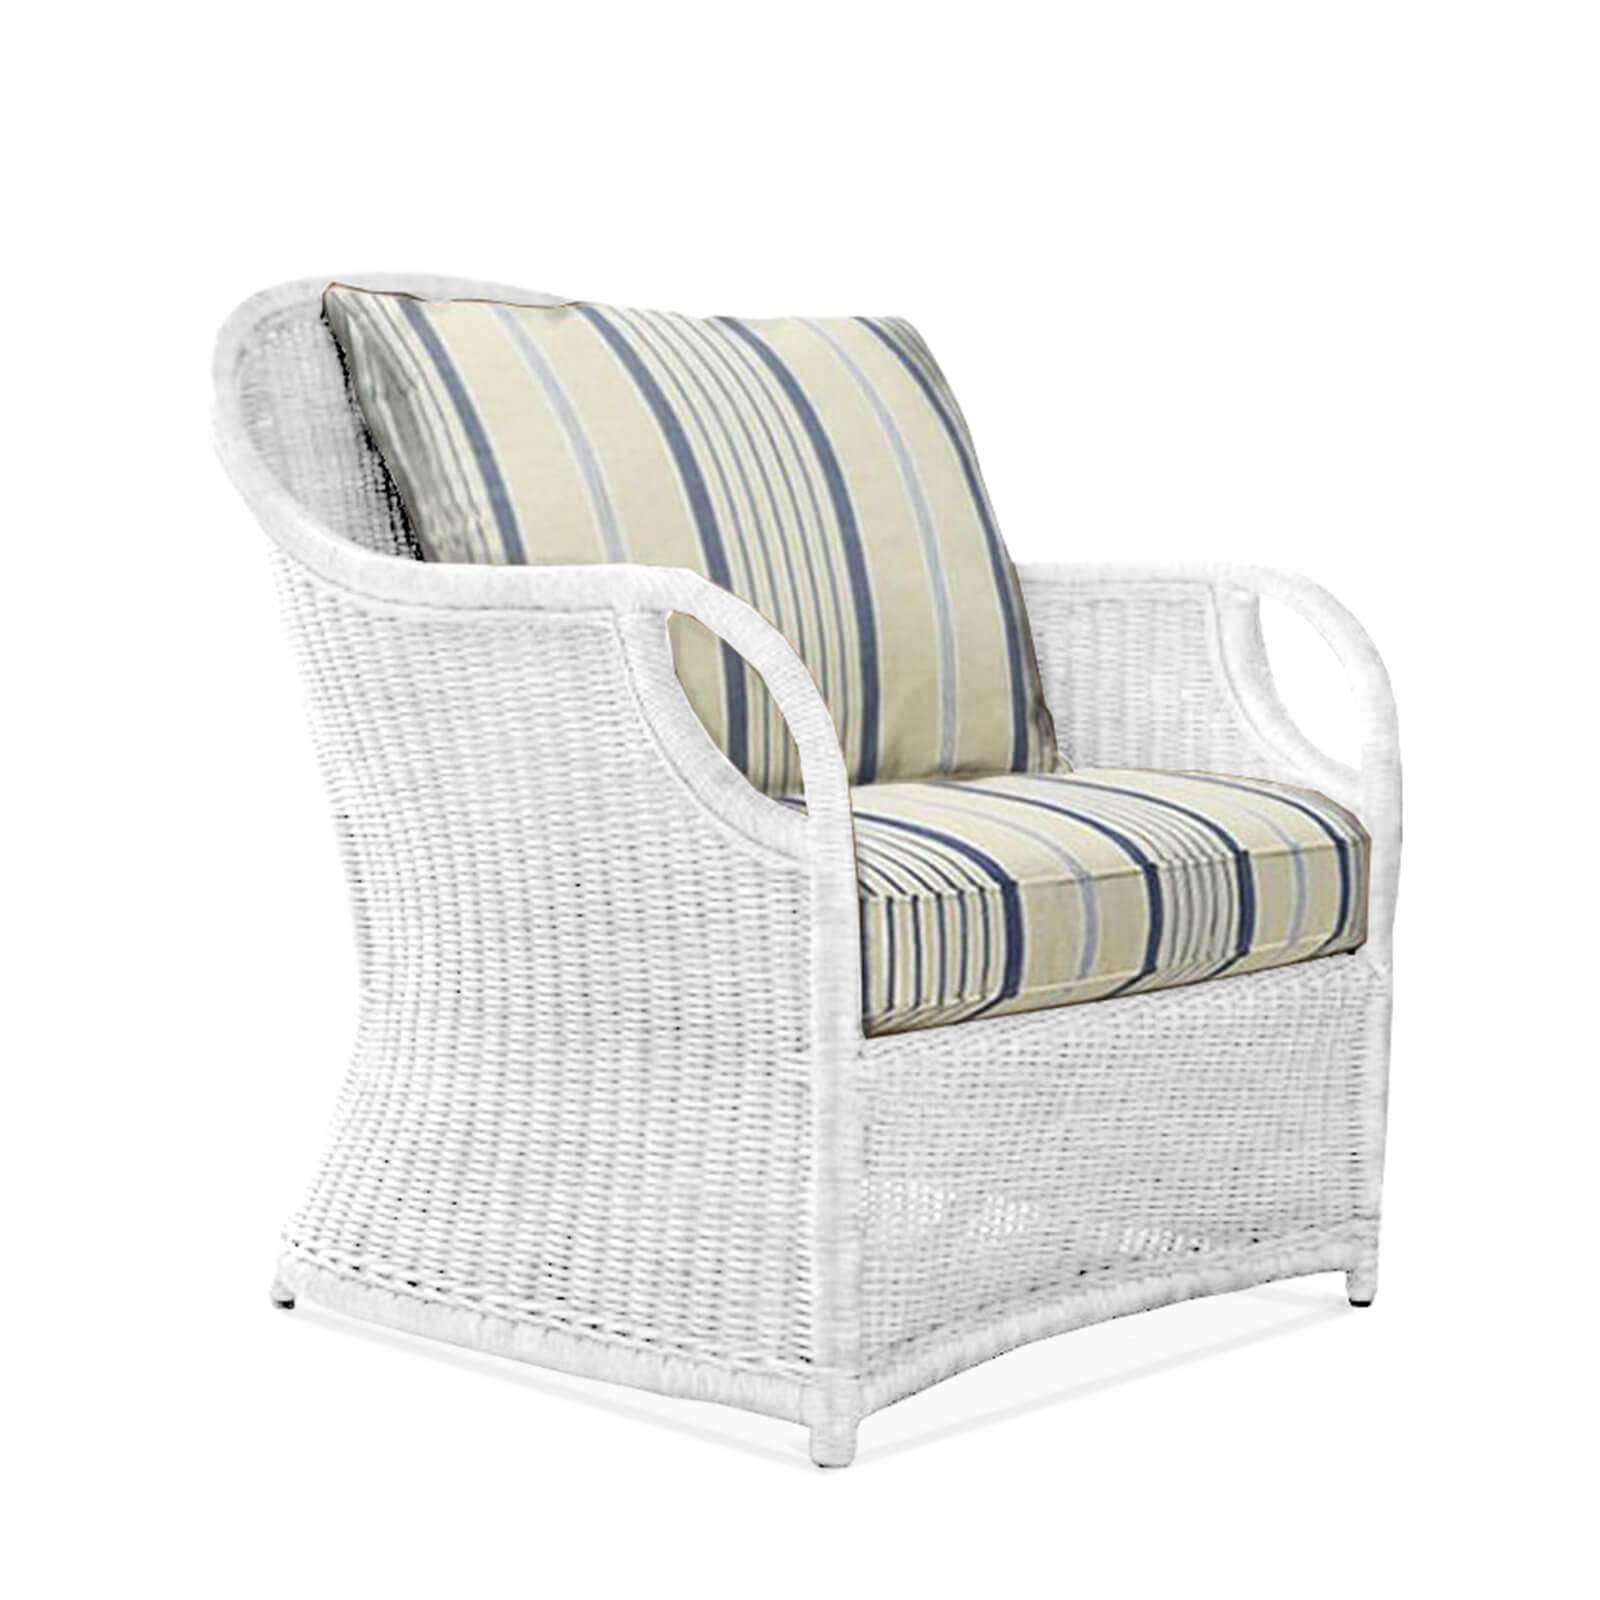 rattan furniture, rattan chair, colonial furniture, wicker chair, white wicker